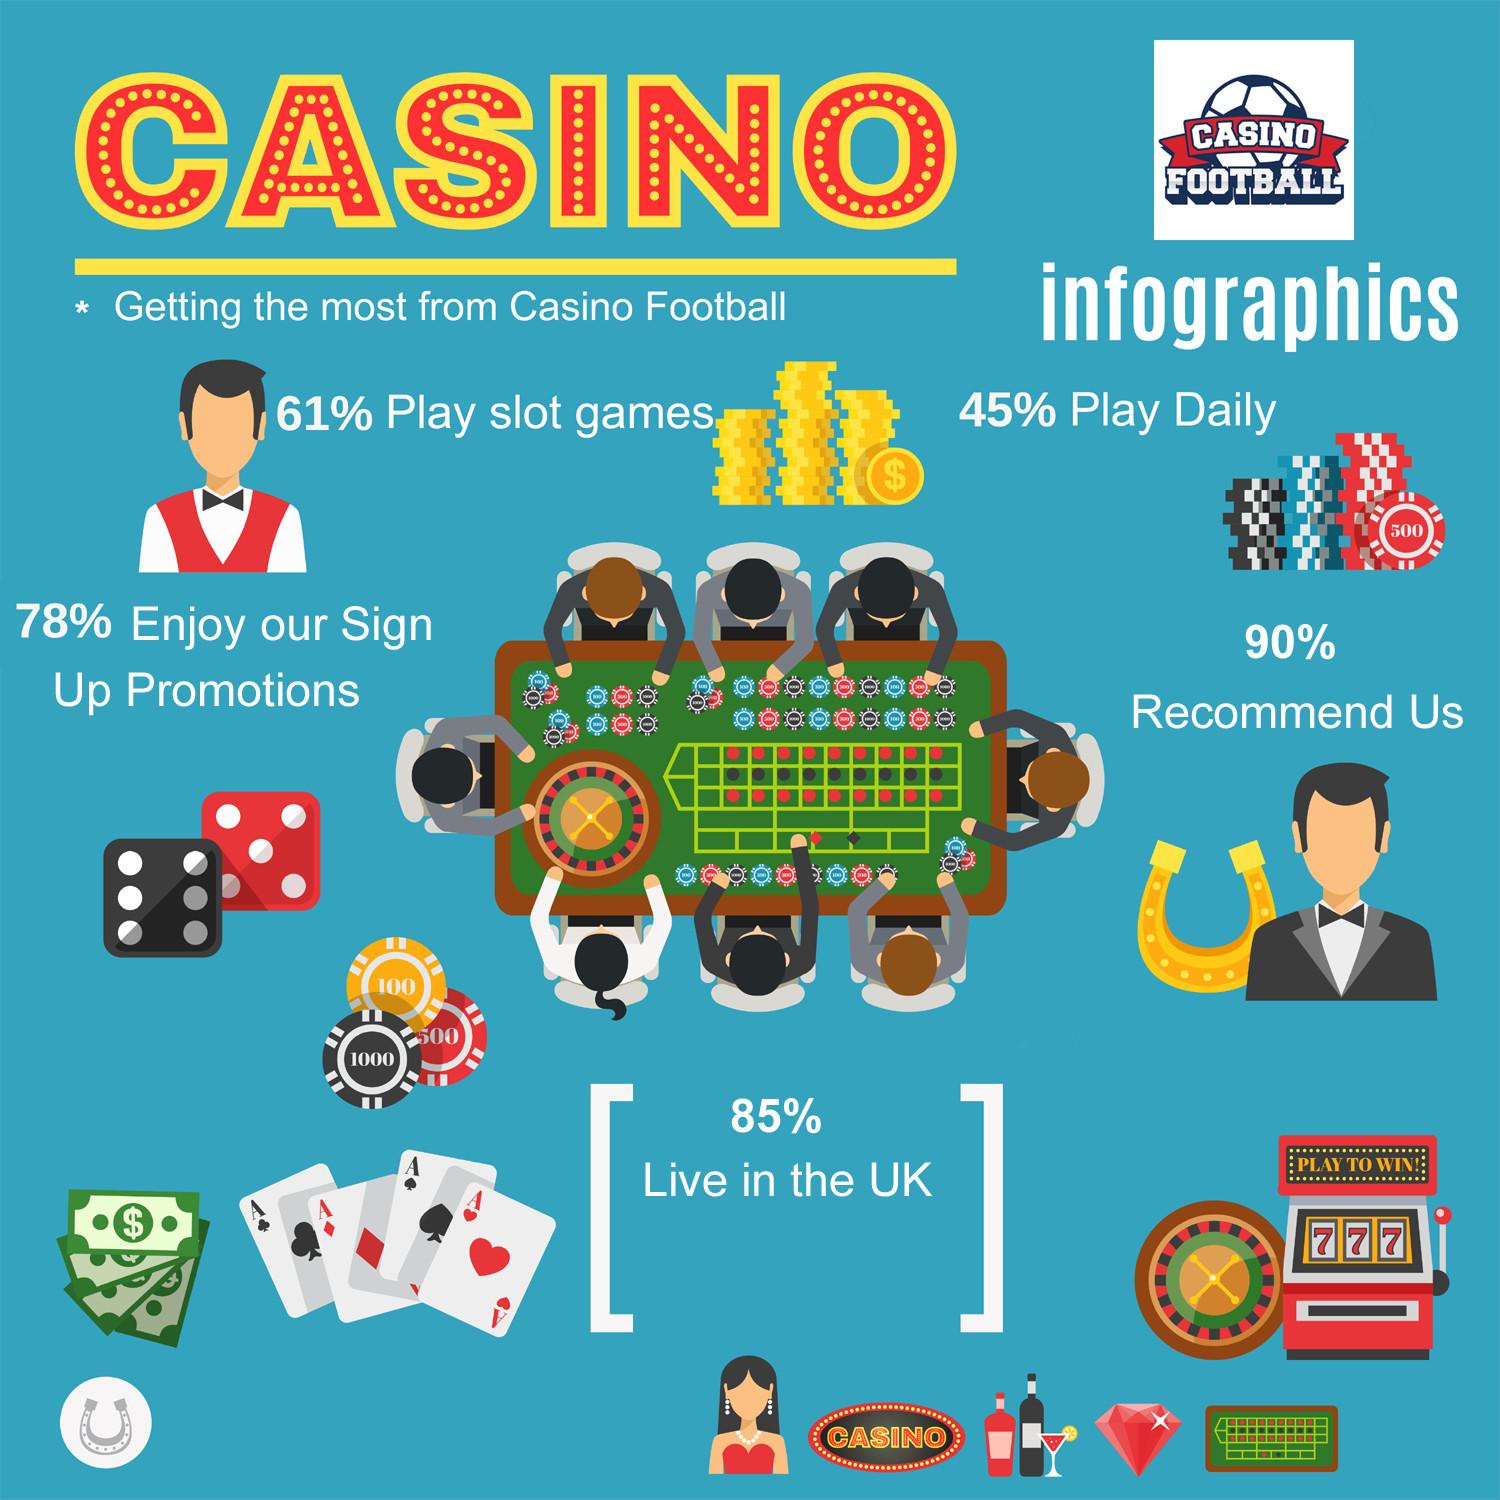 Consumer Research for Casino Football Infographic